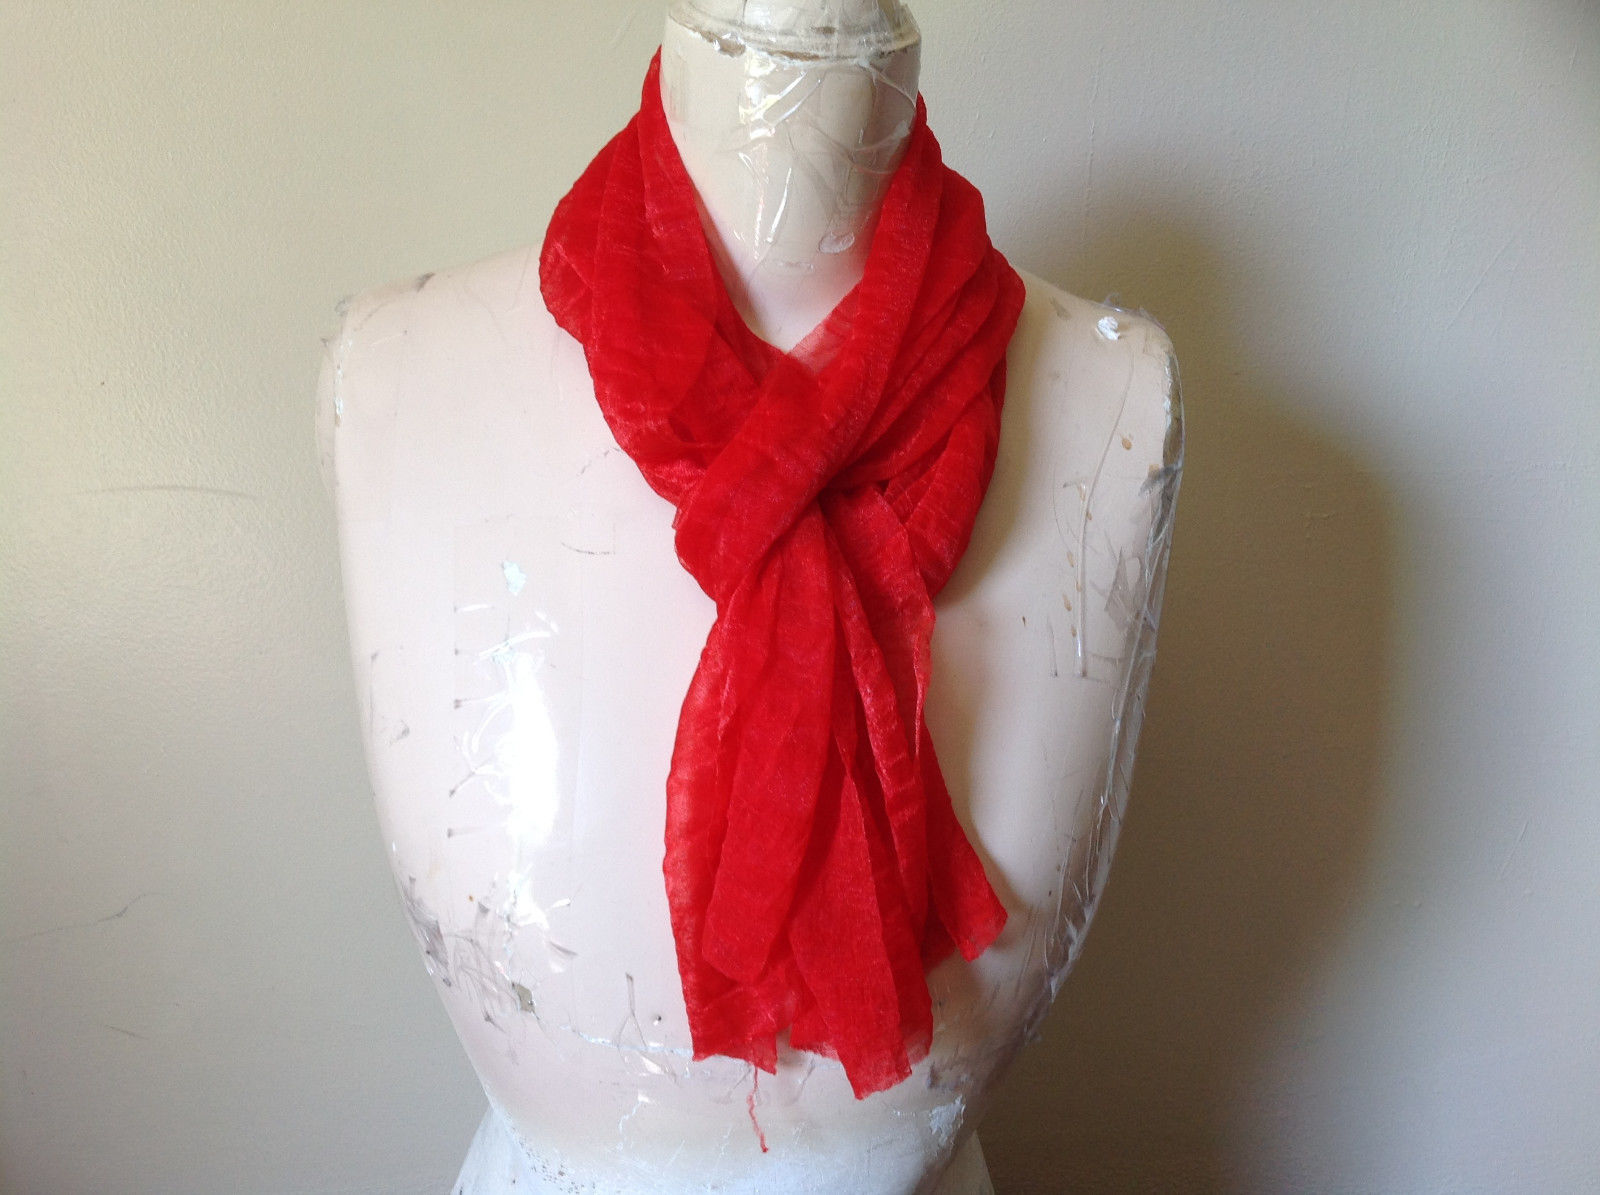 Bright Red Sheer Shiny Material Fashion Scarf Light Weight Material NO TAGS